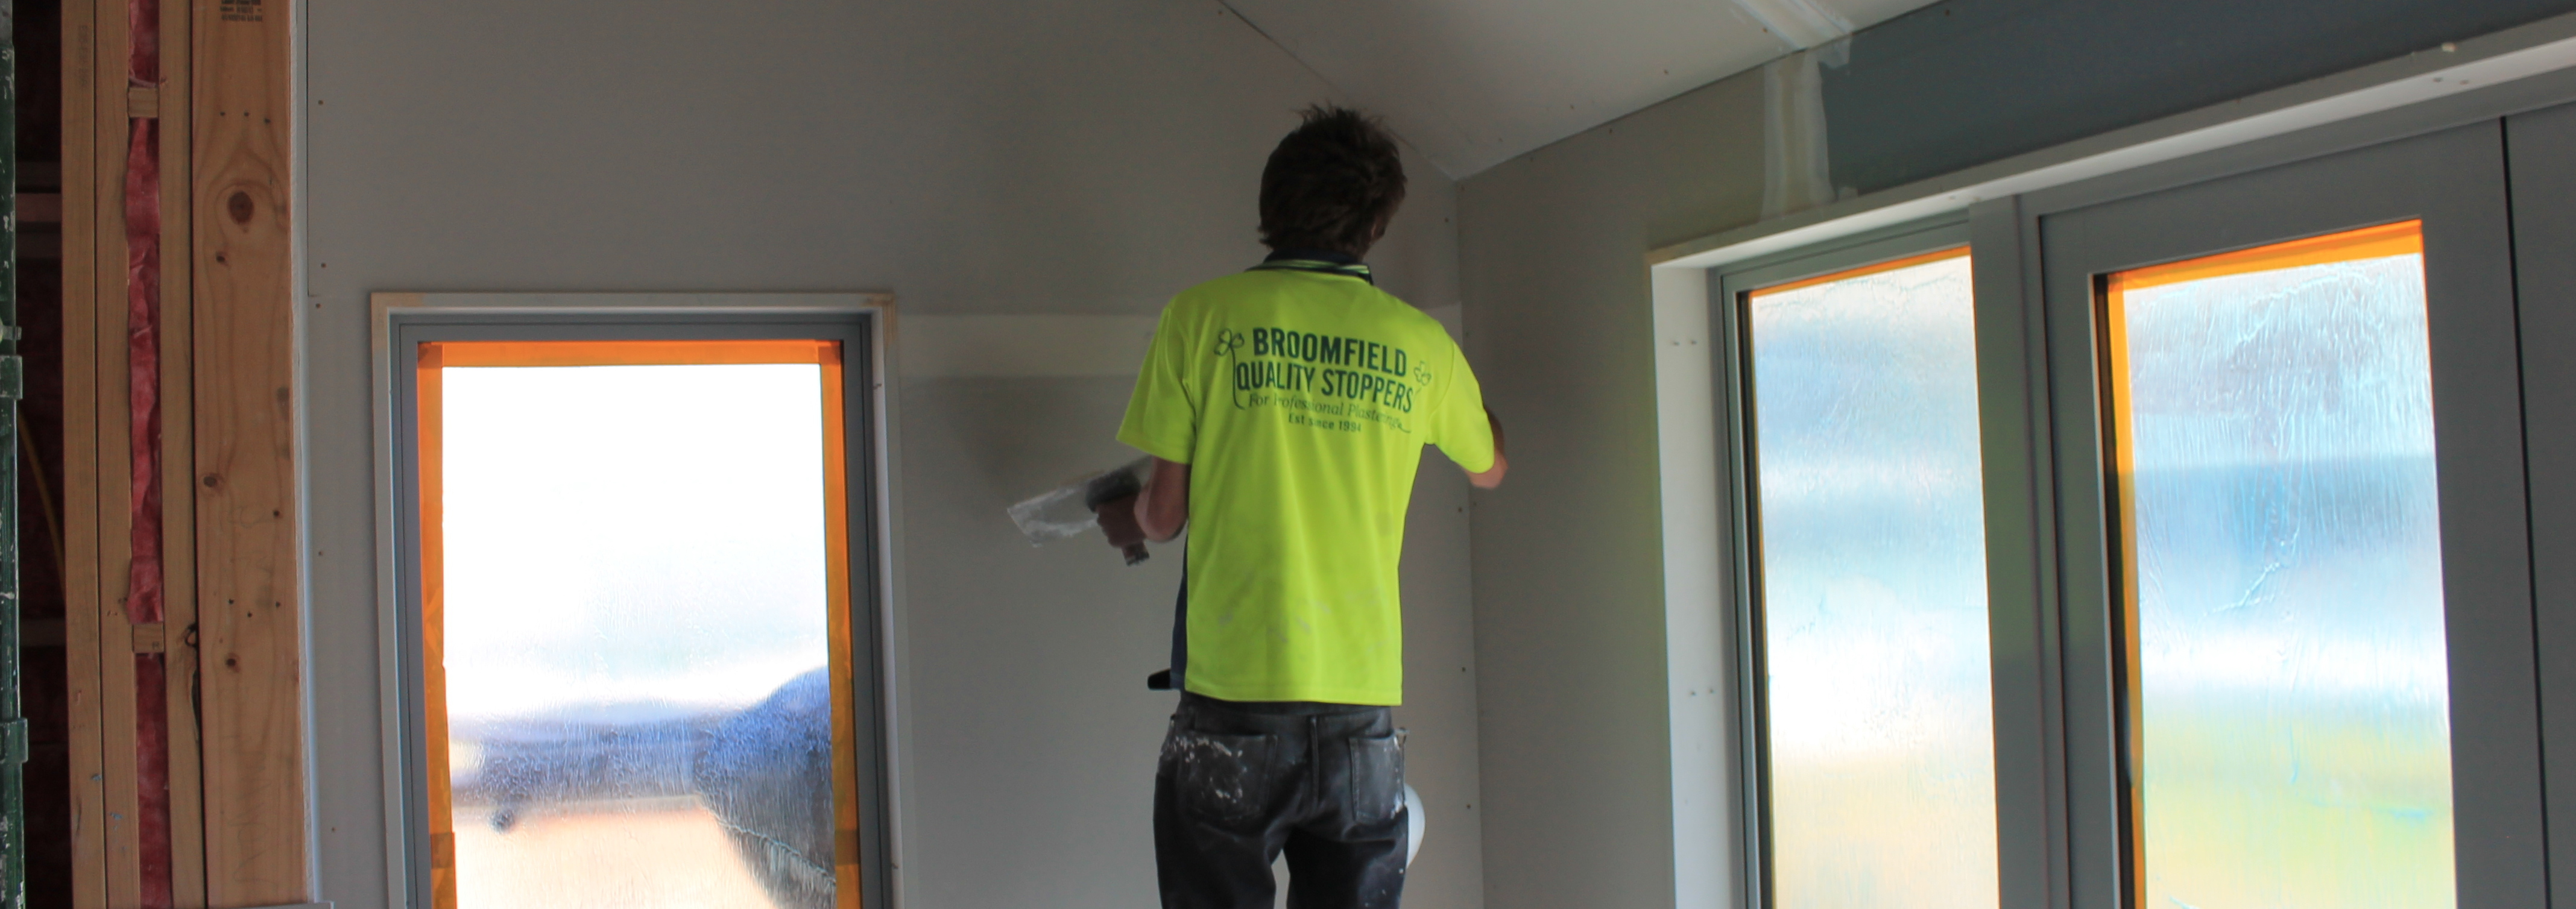 Contemporary interior made possible with plastering services in Christchurch